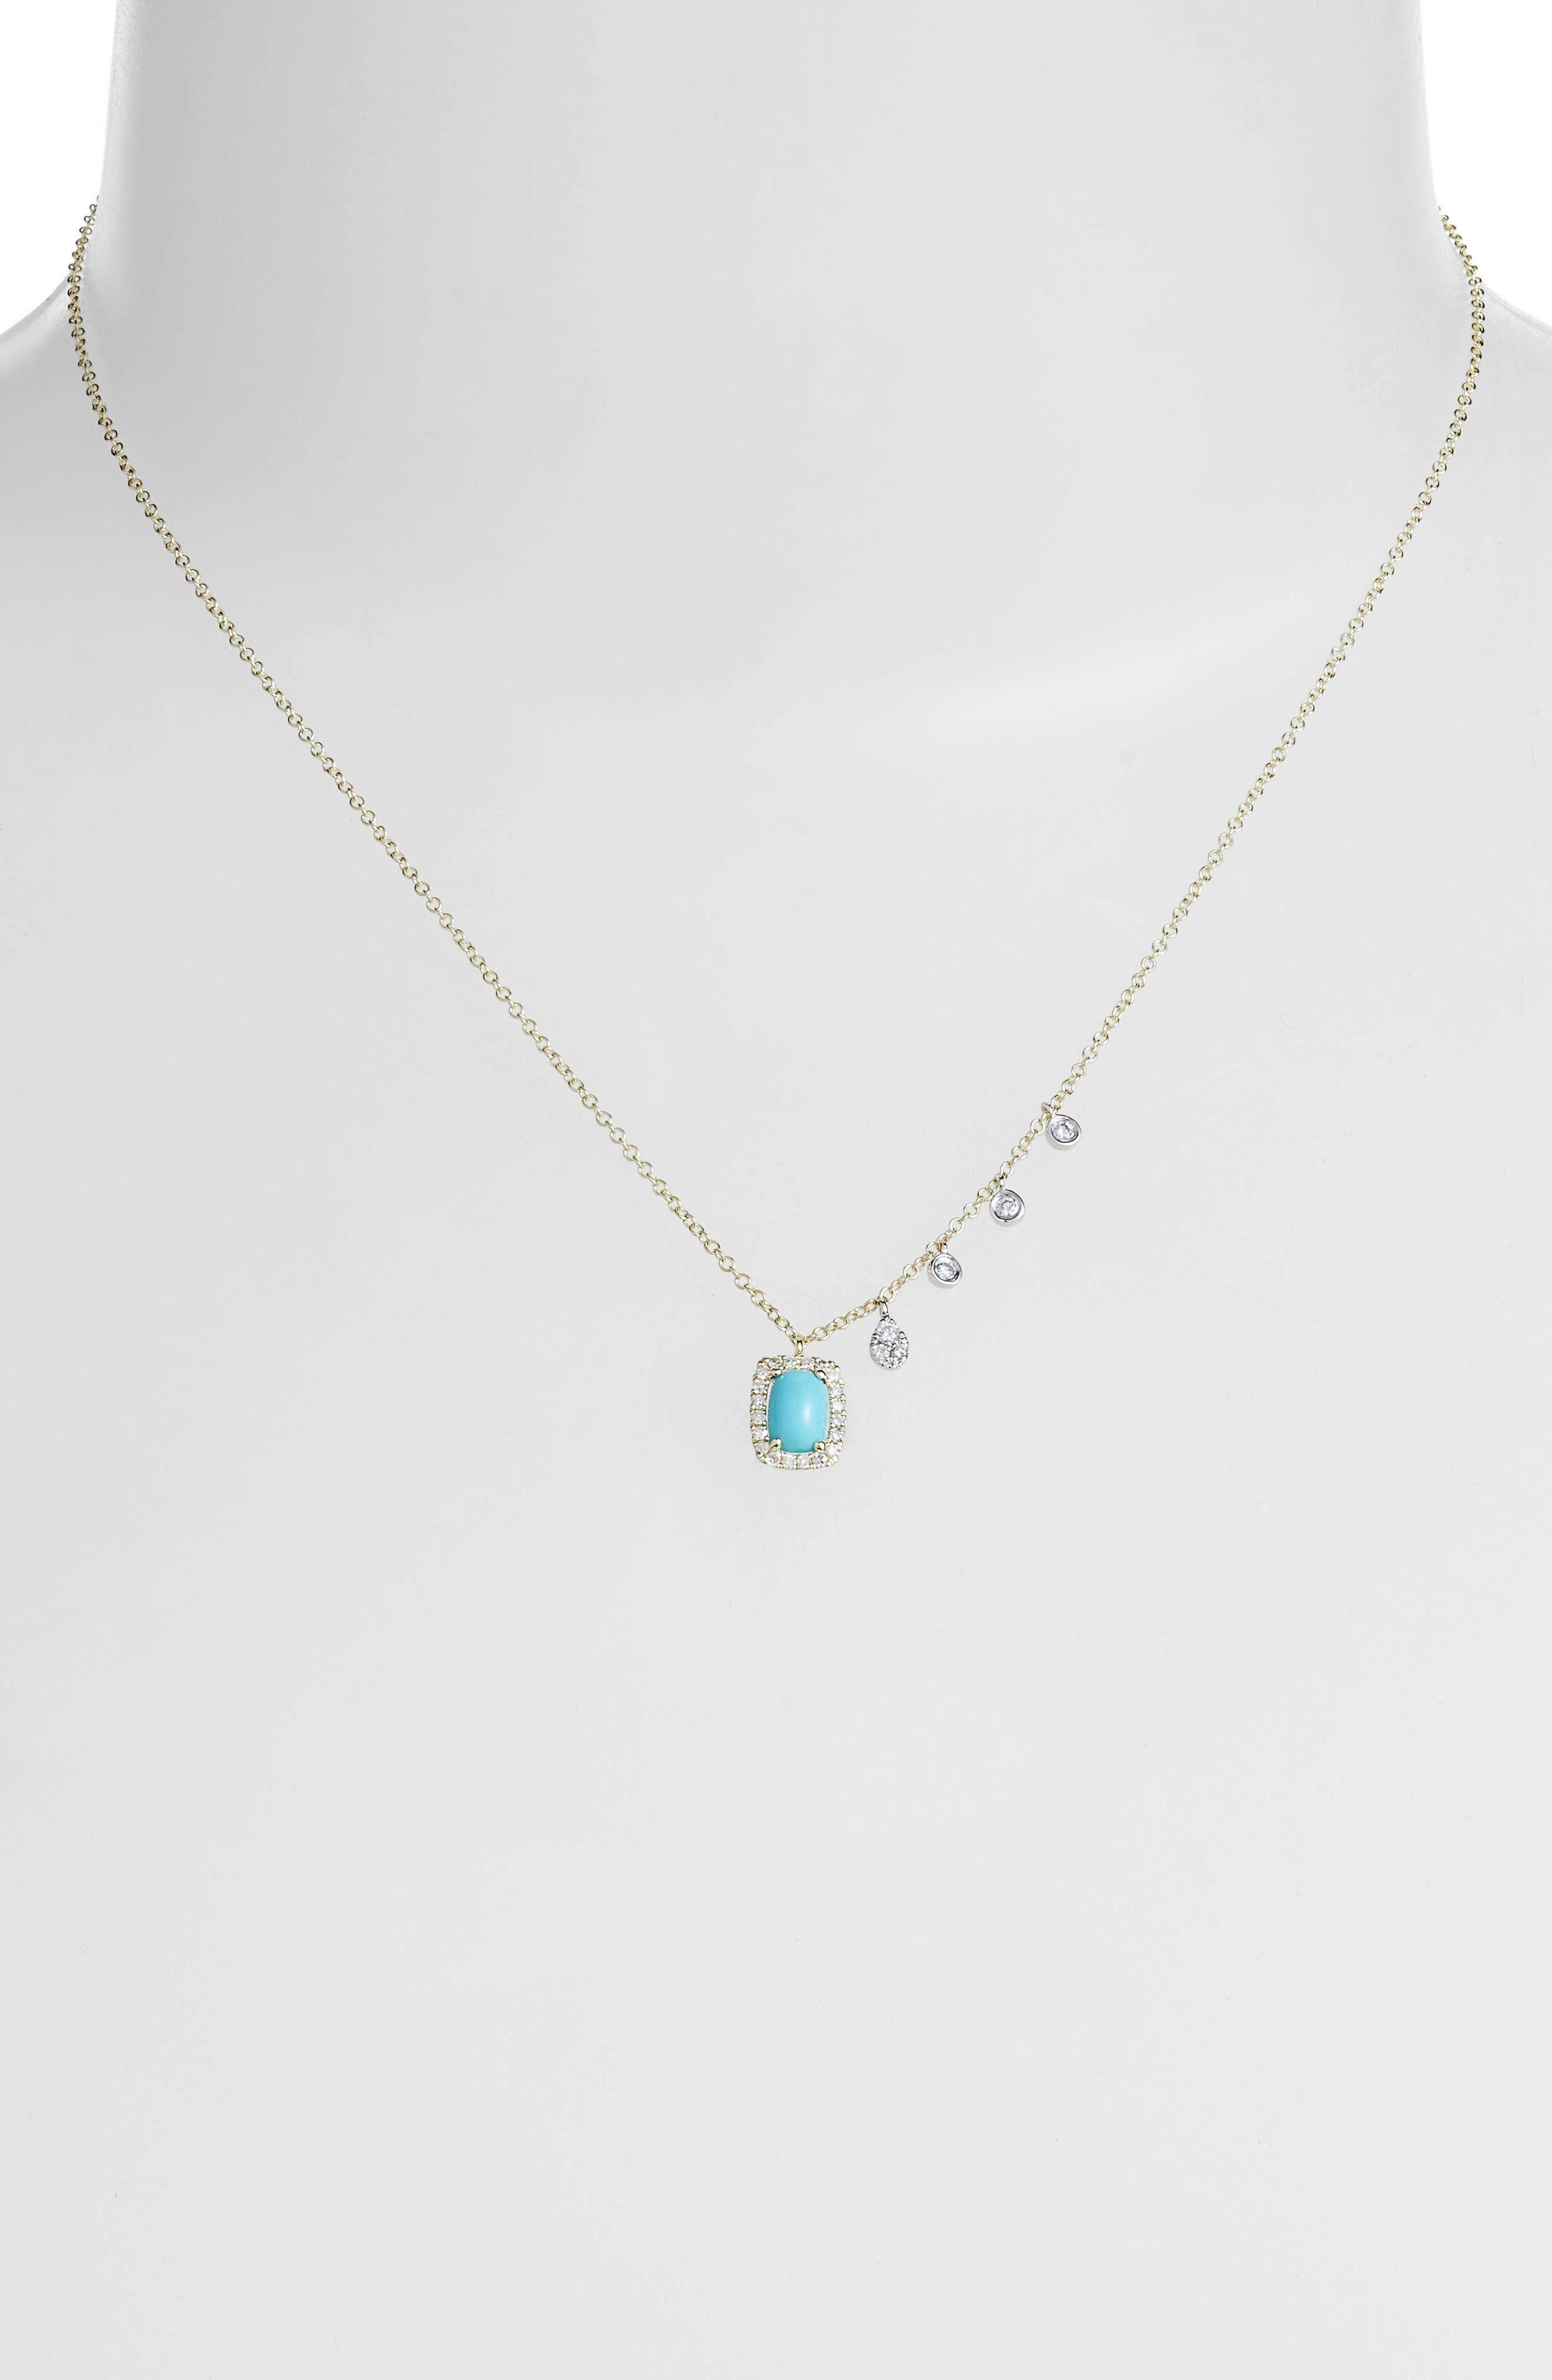 Meira T Turquoise & Diamond Charm Necklace